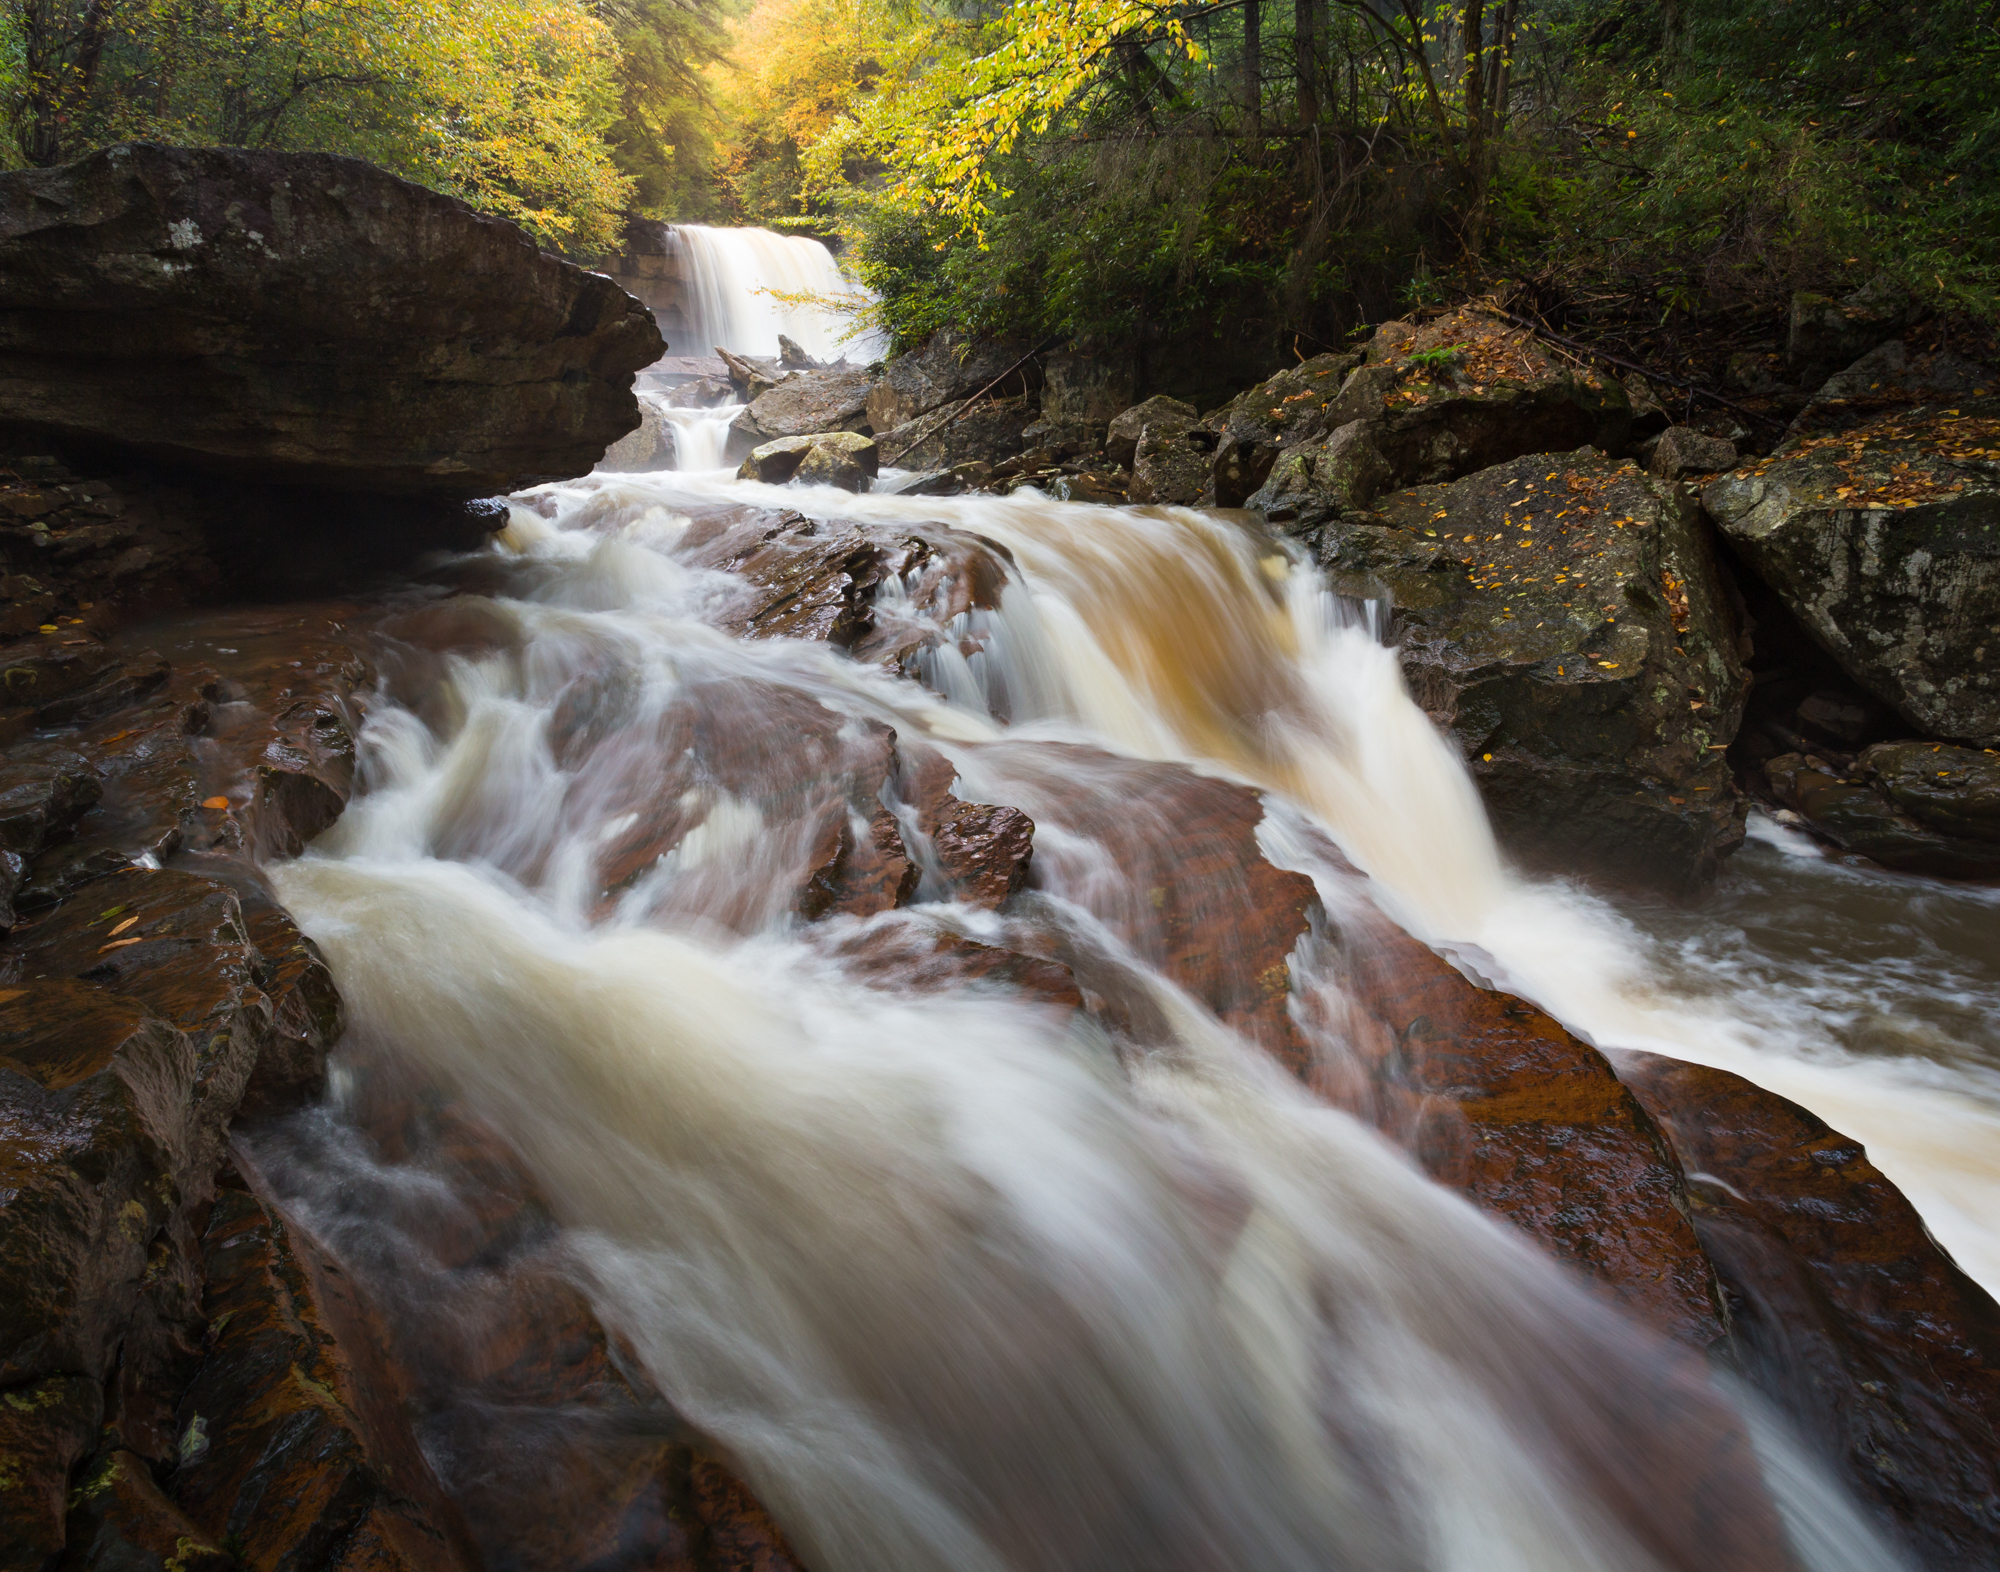 50. Douglas Falls, Monongahela National Forest, West Virginia